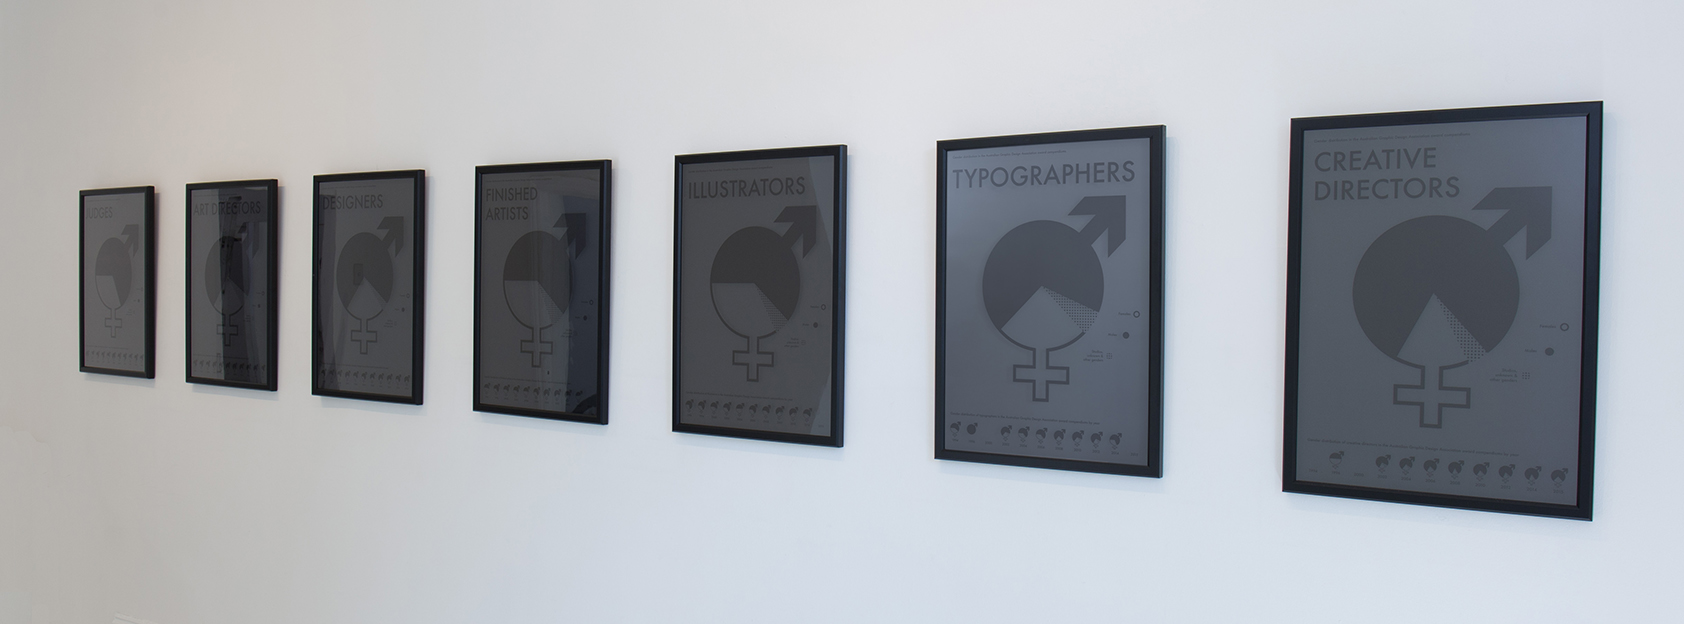 Anonymity poster designs which were AGDA Award finalists.